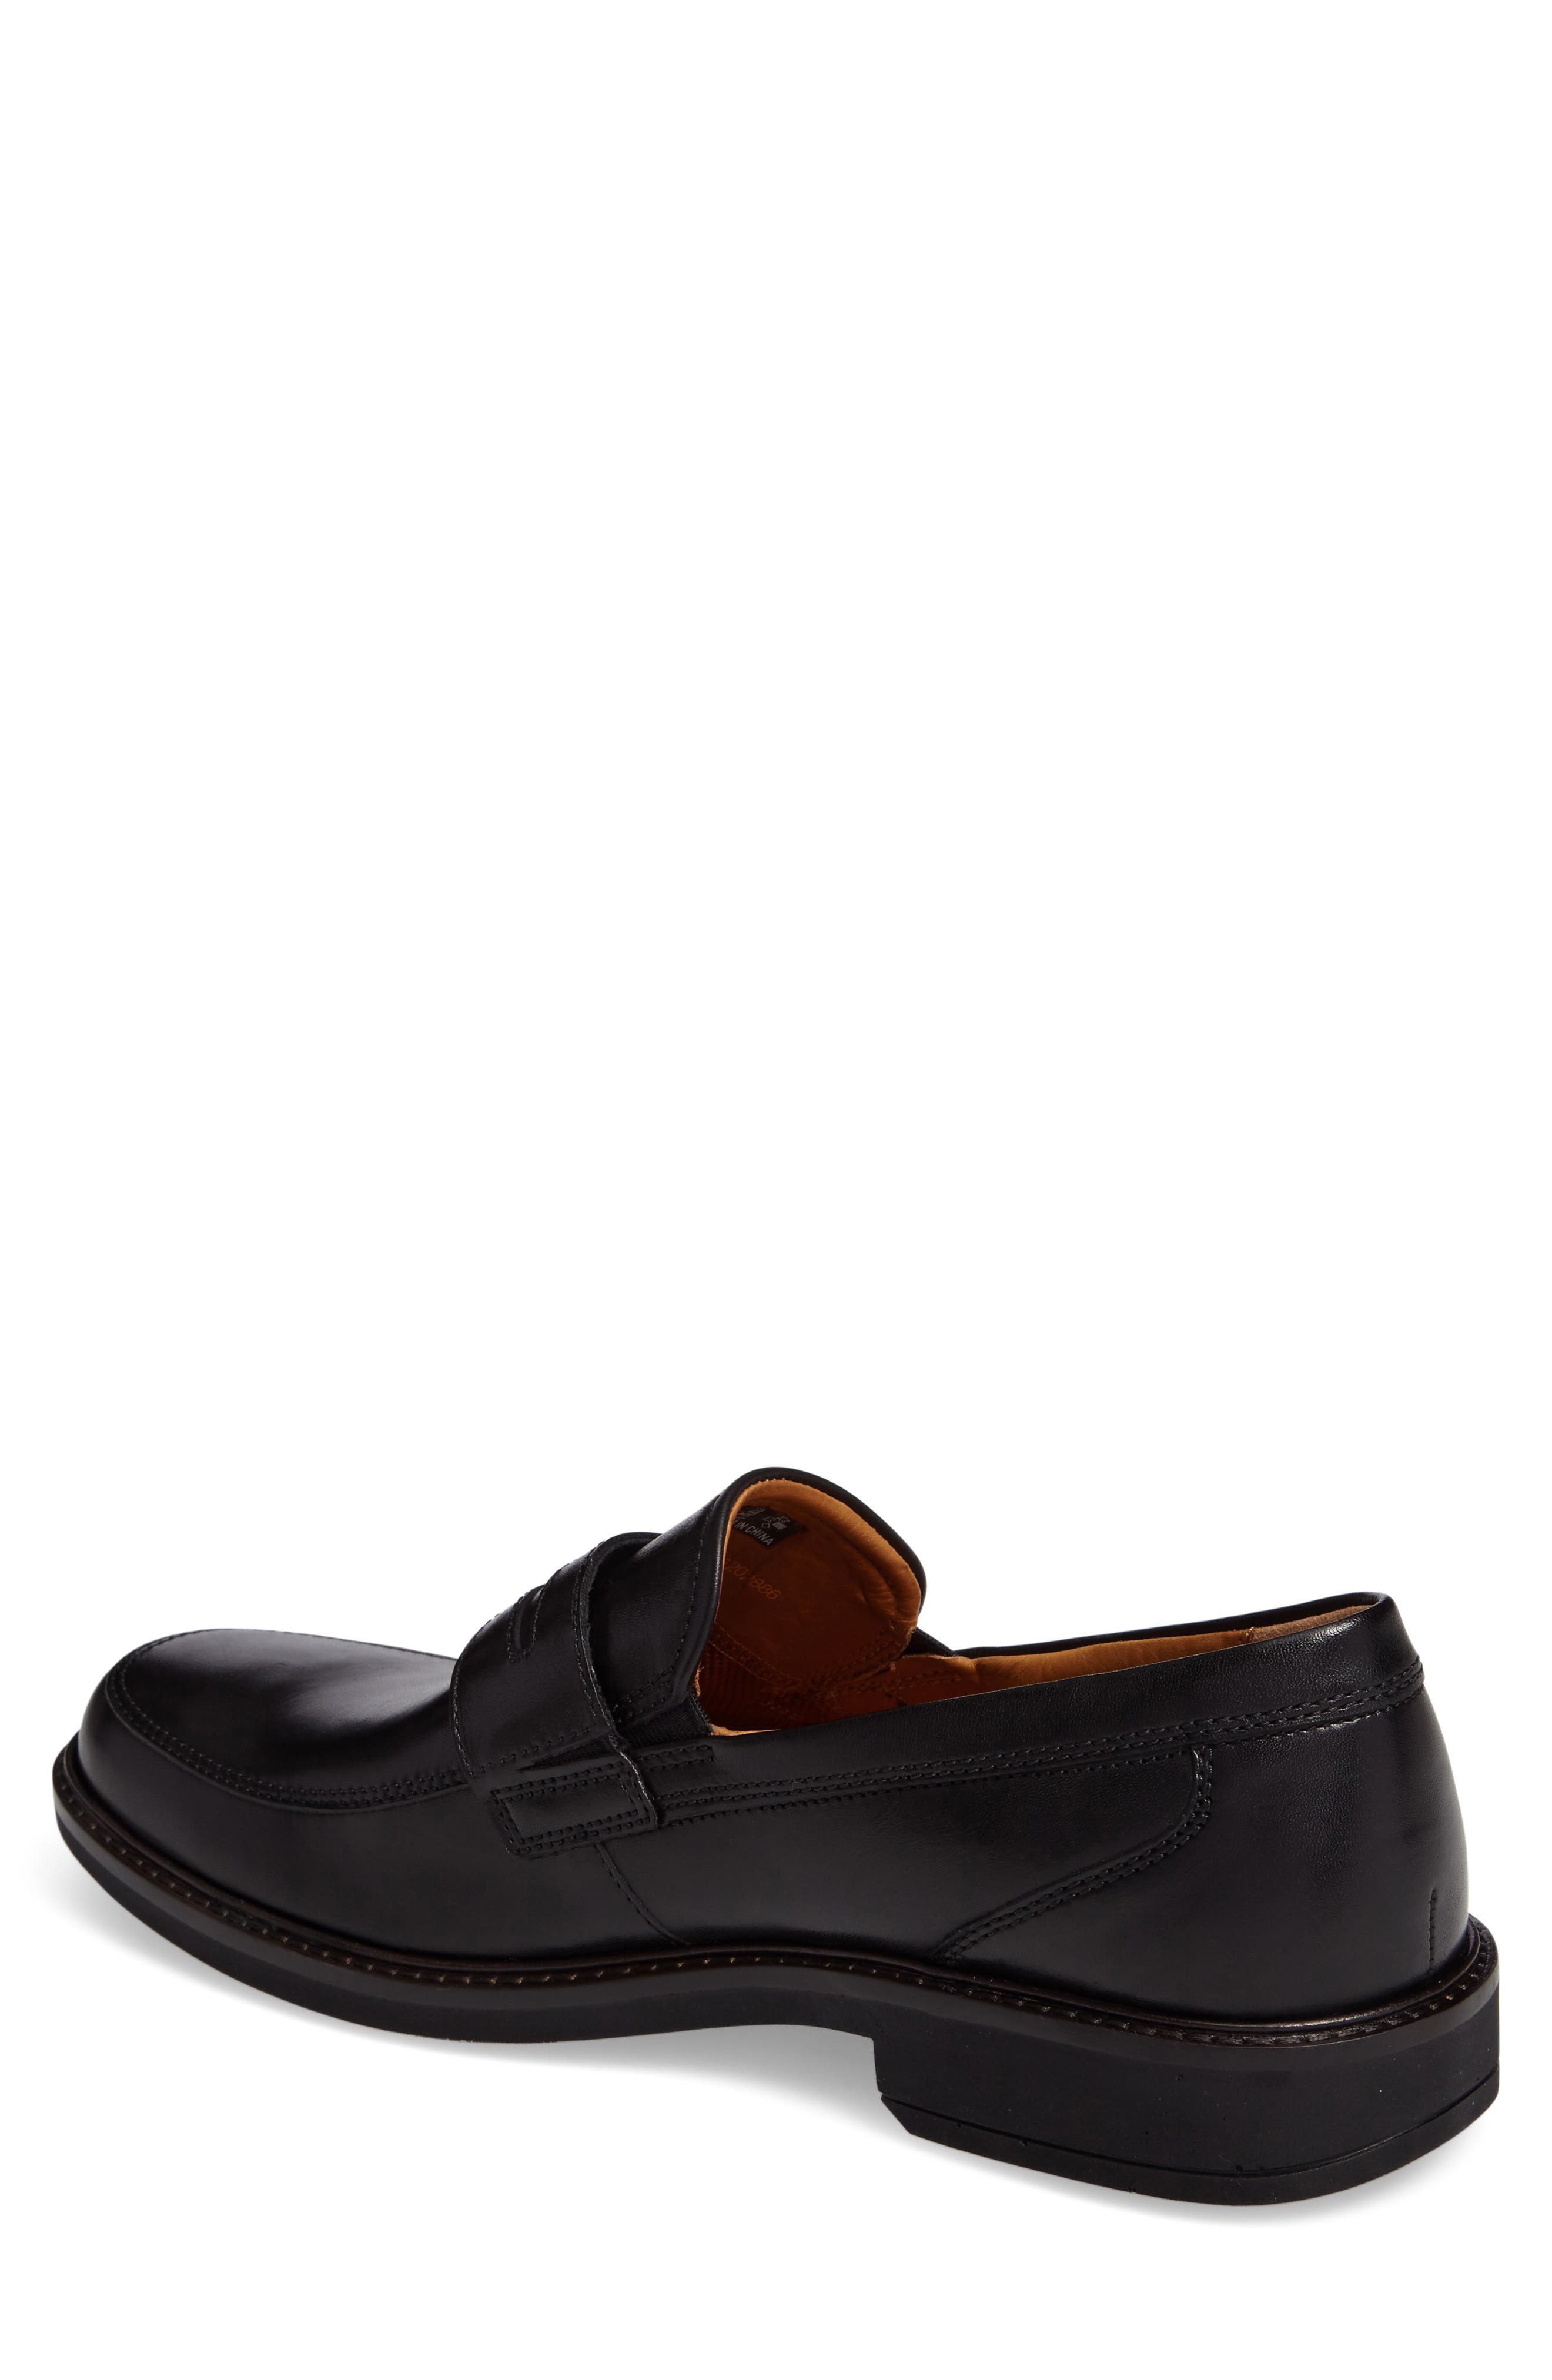 Holton Penny Loafer,                             Alternate thumbnail 2, color,                             Black